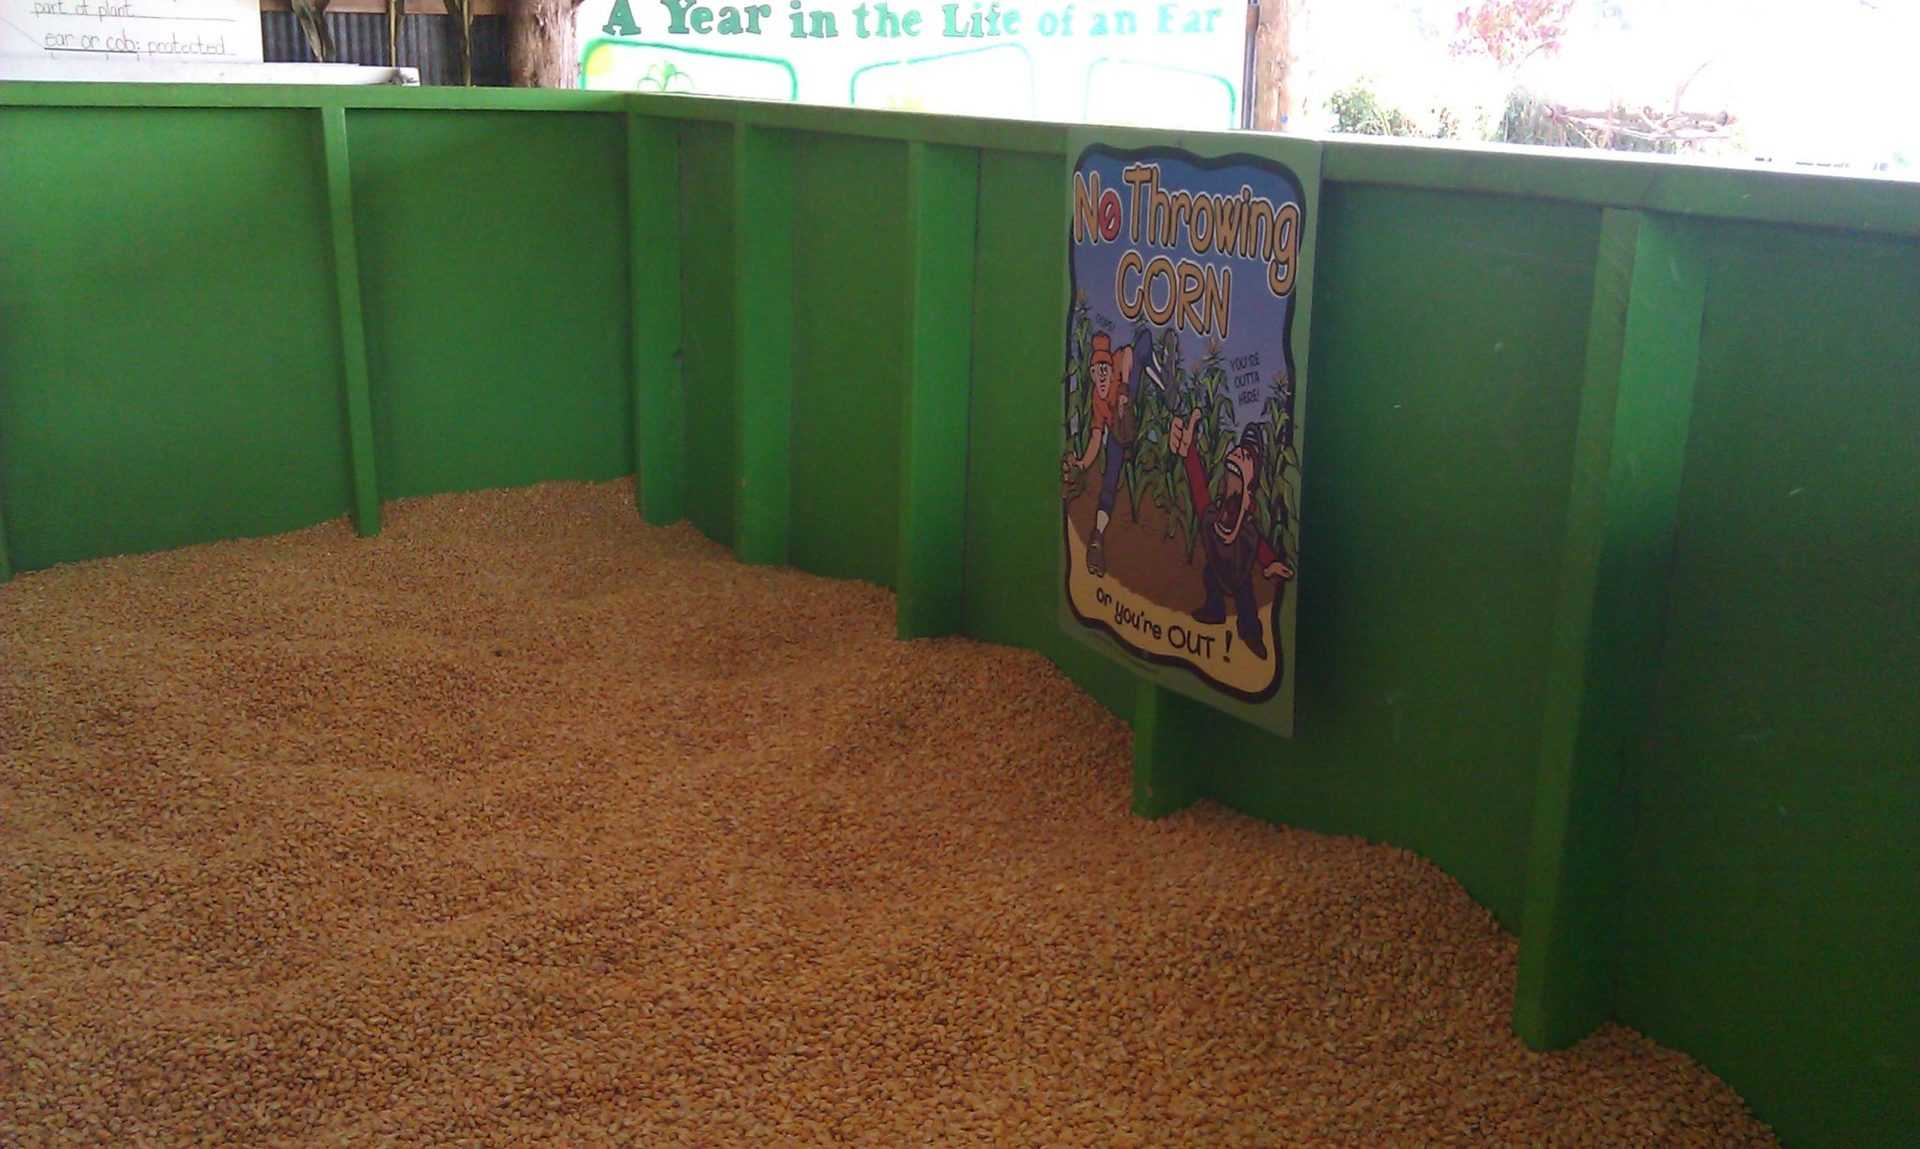 Honeysuckle Hill Farm corn box